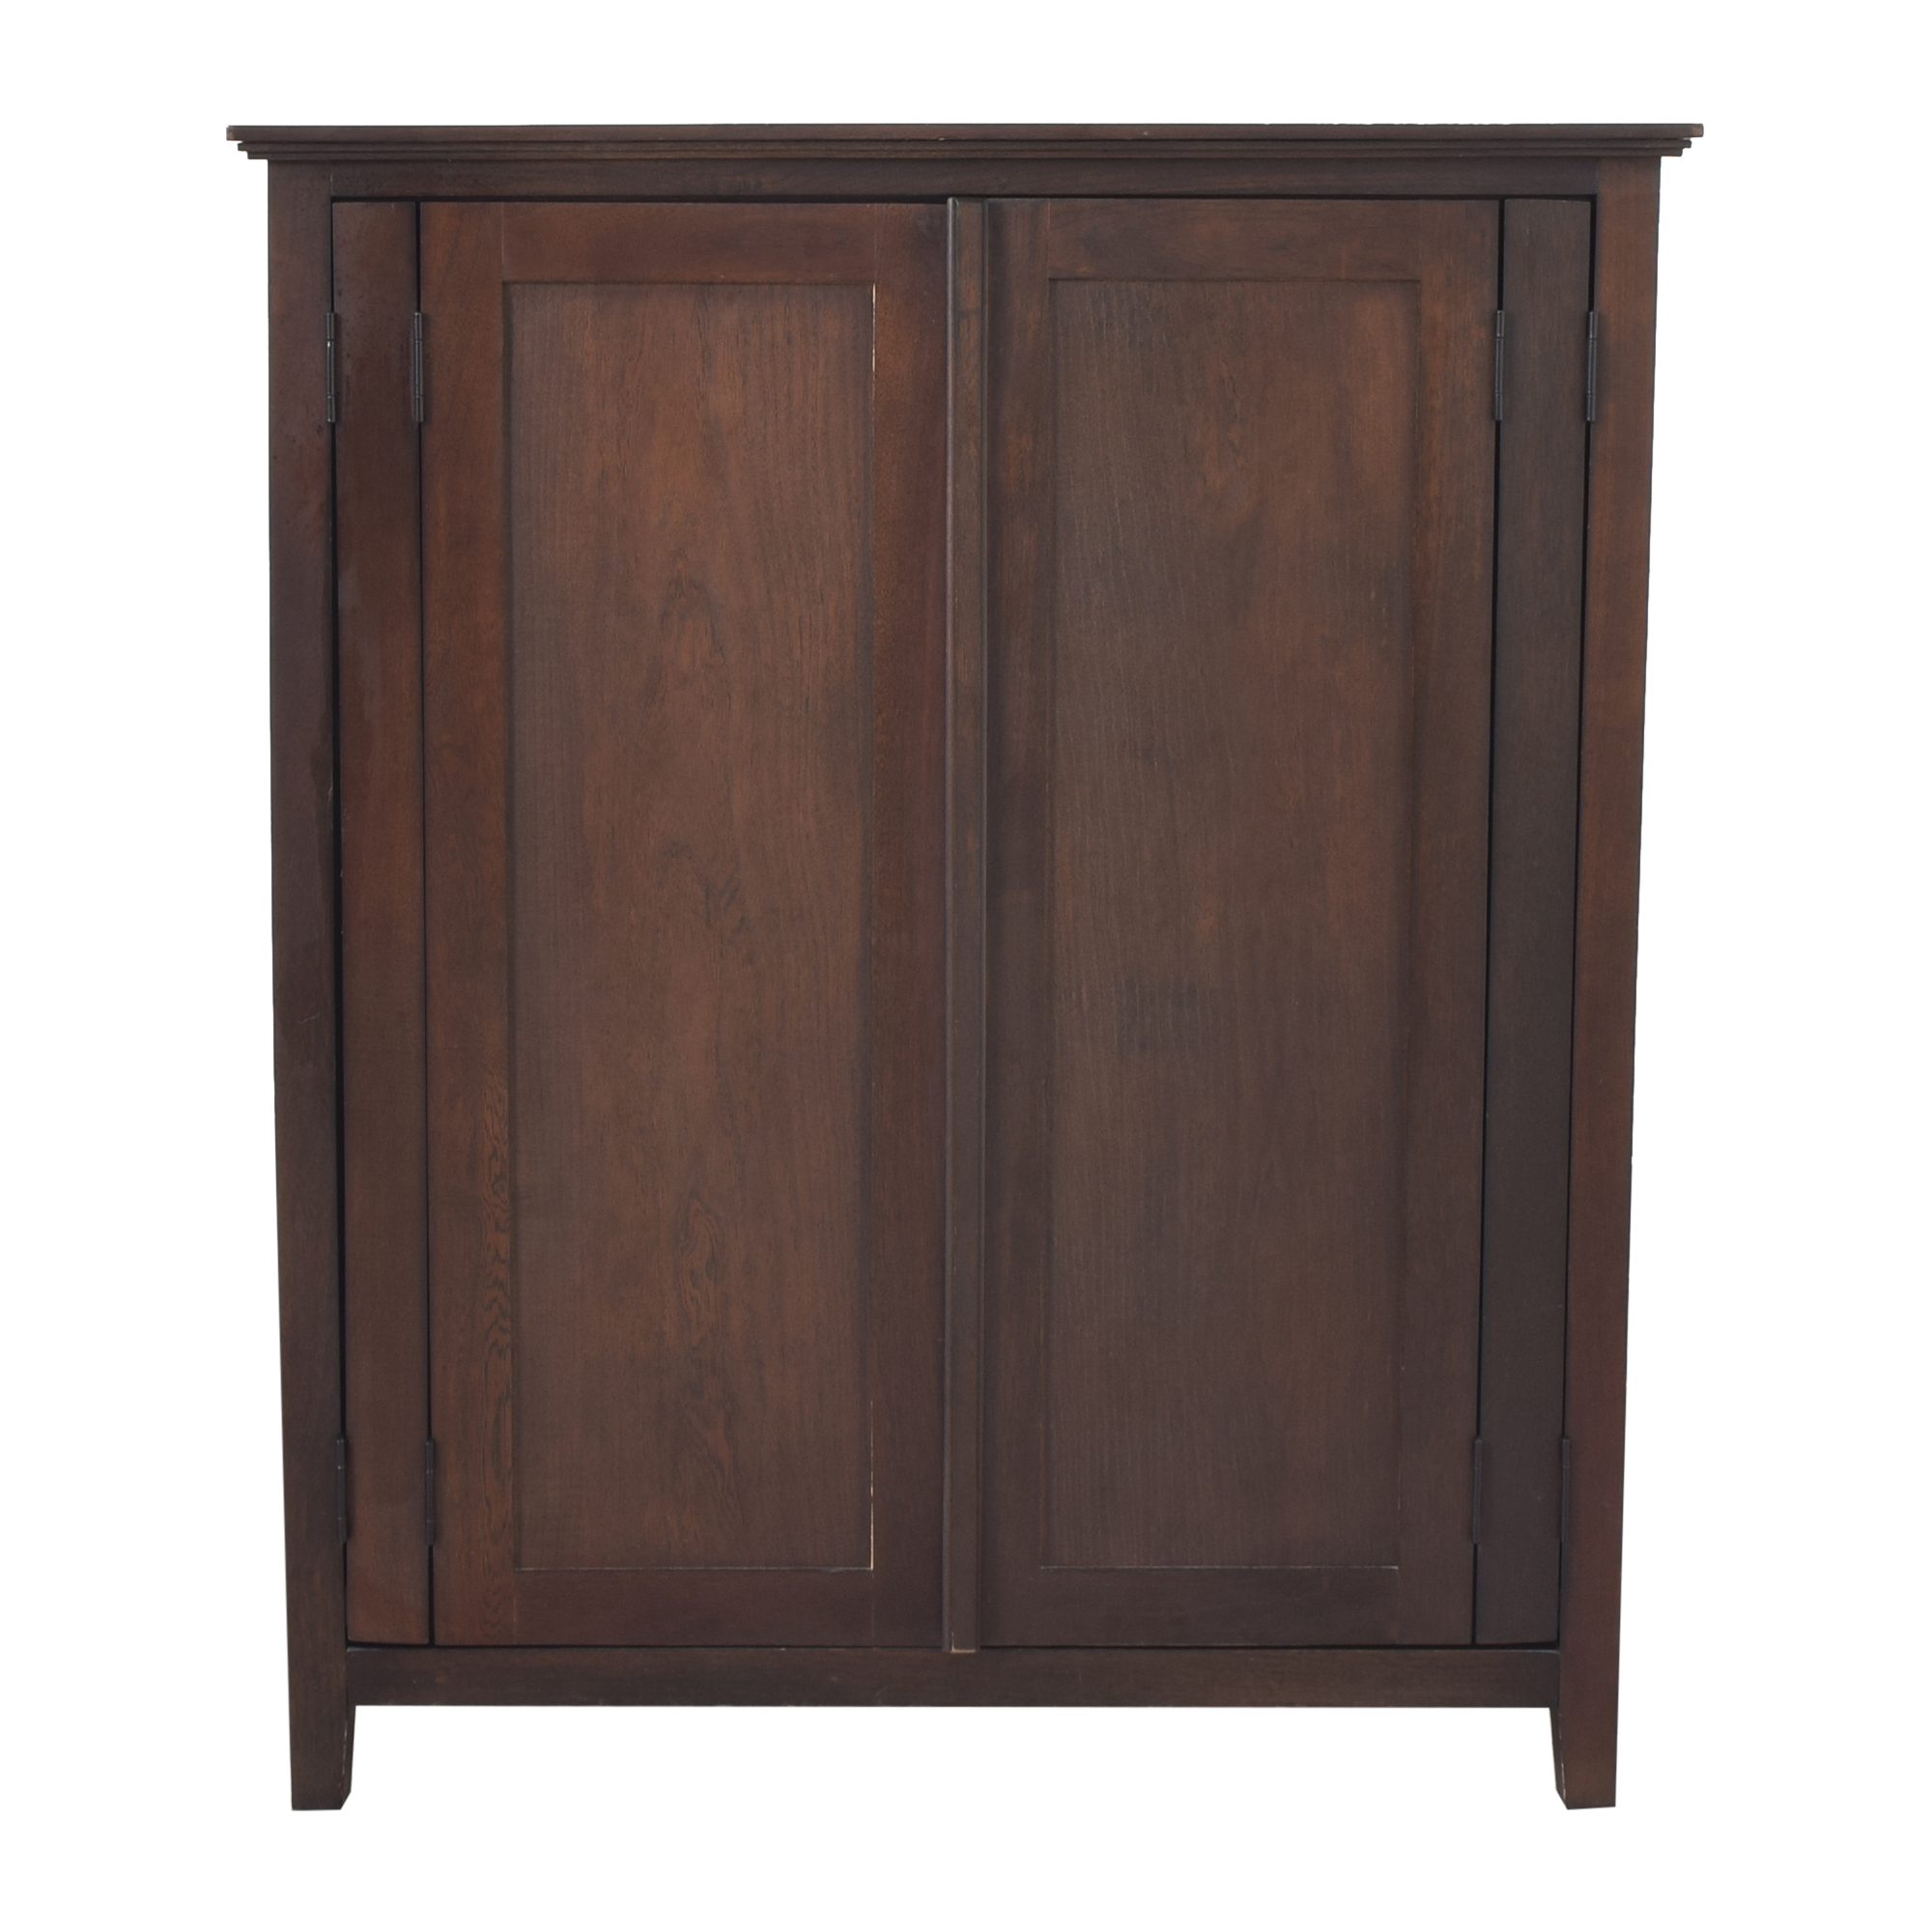 Pottery Barn Two Door Cabinet / Storage